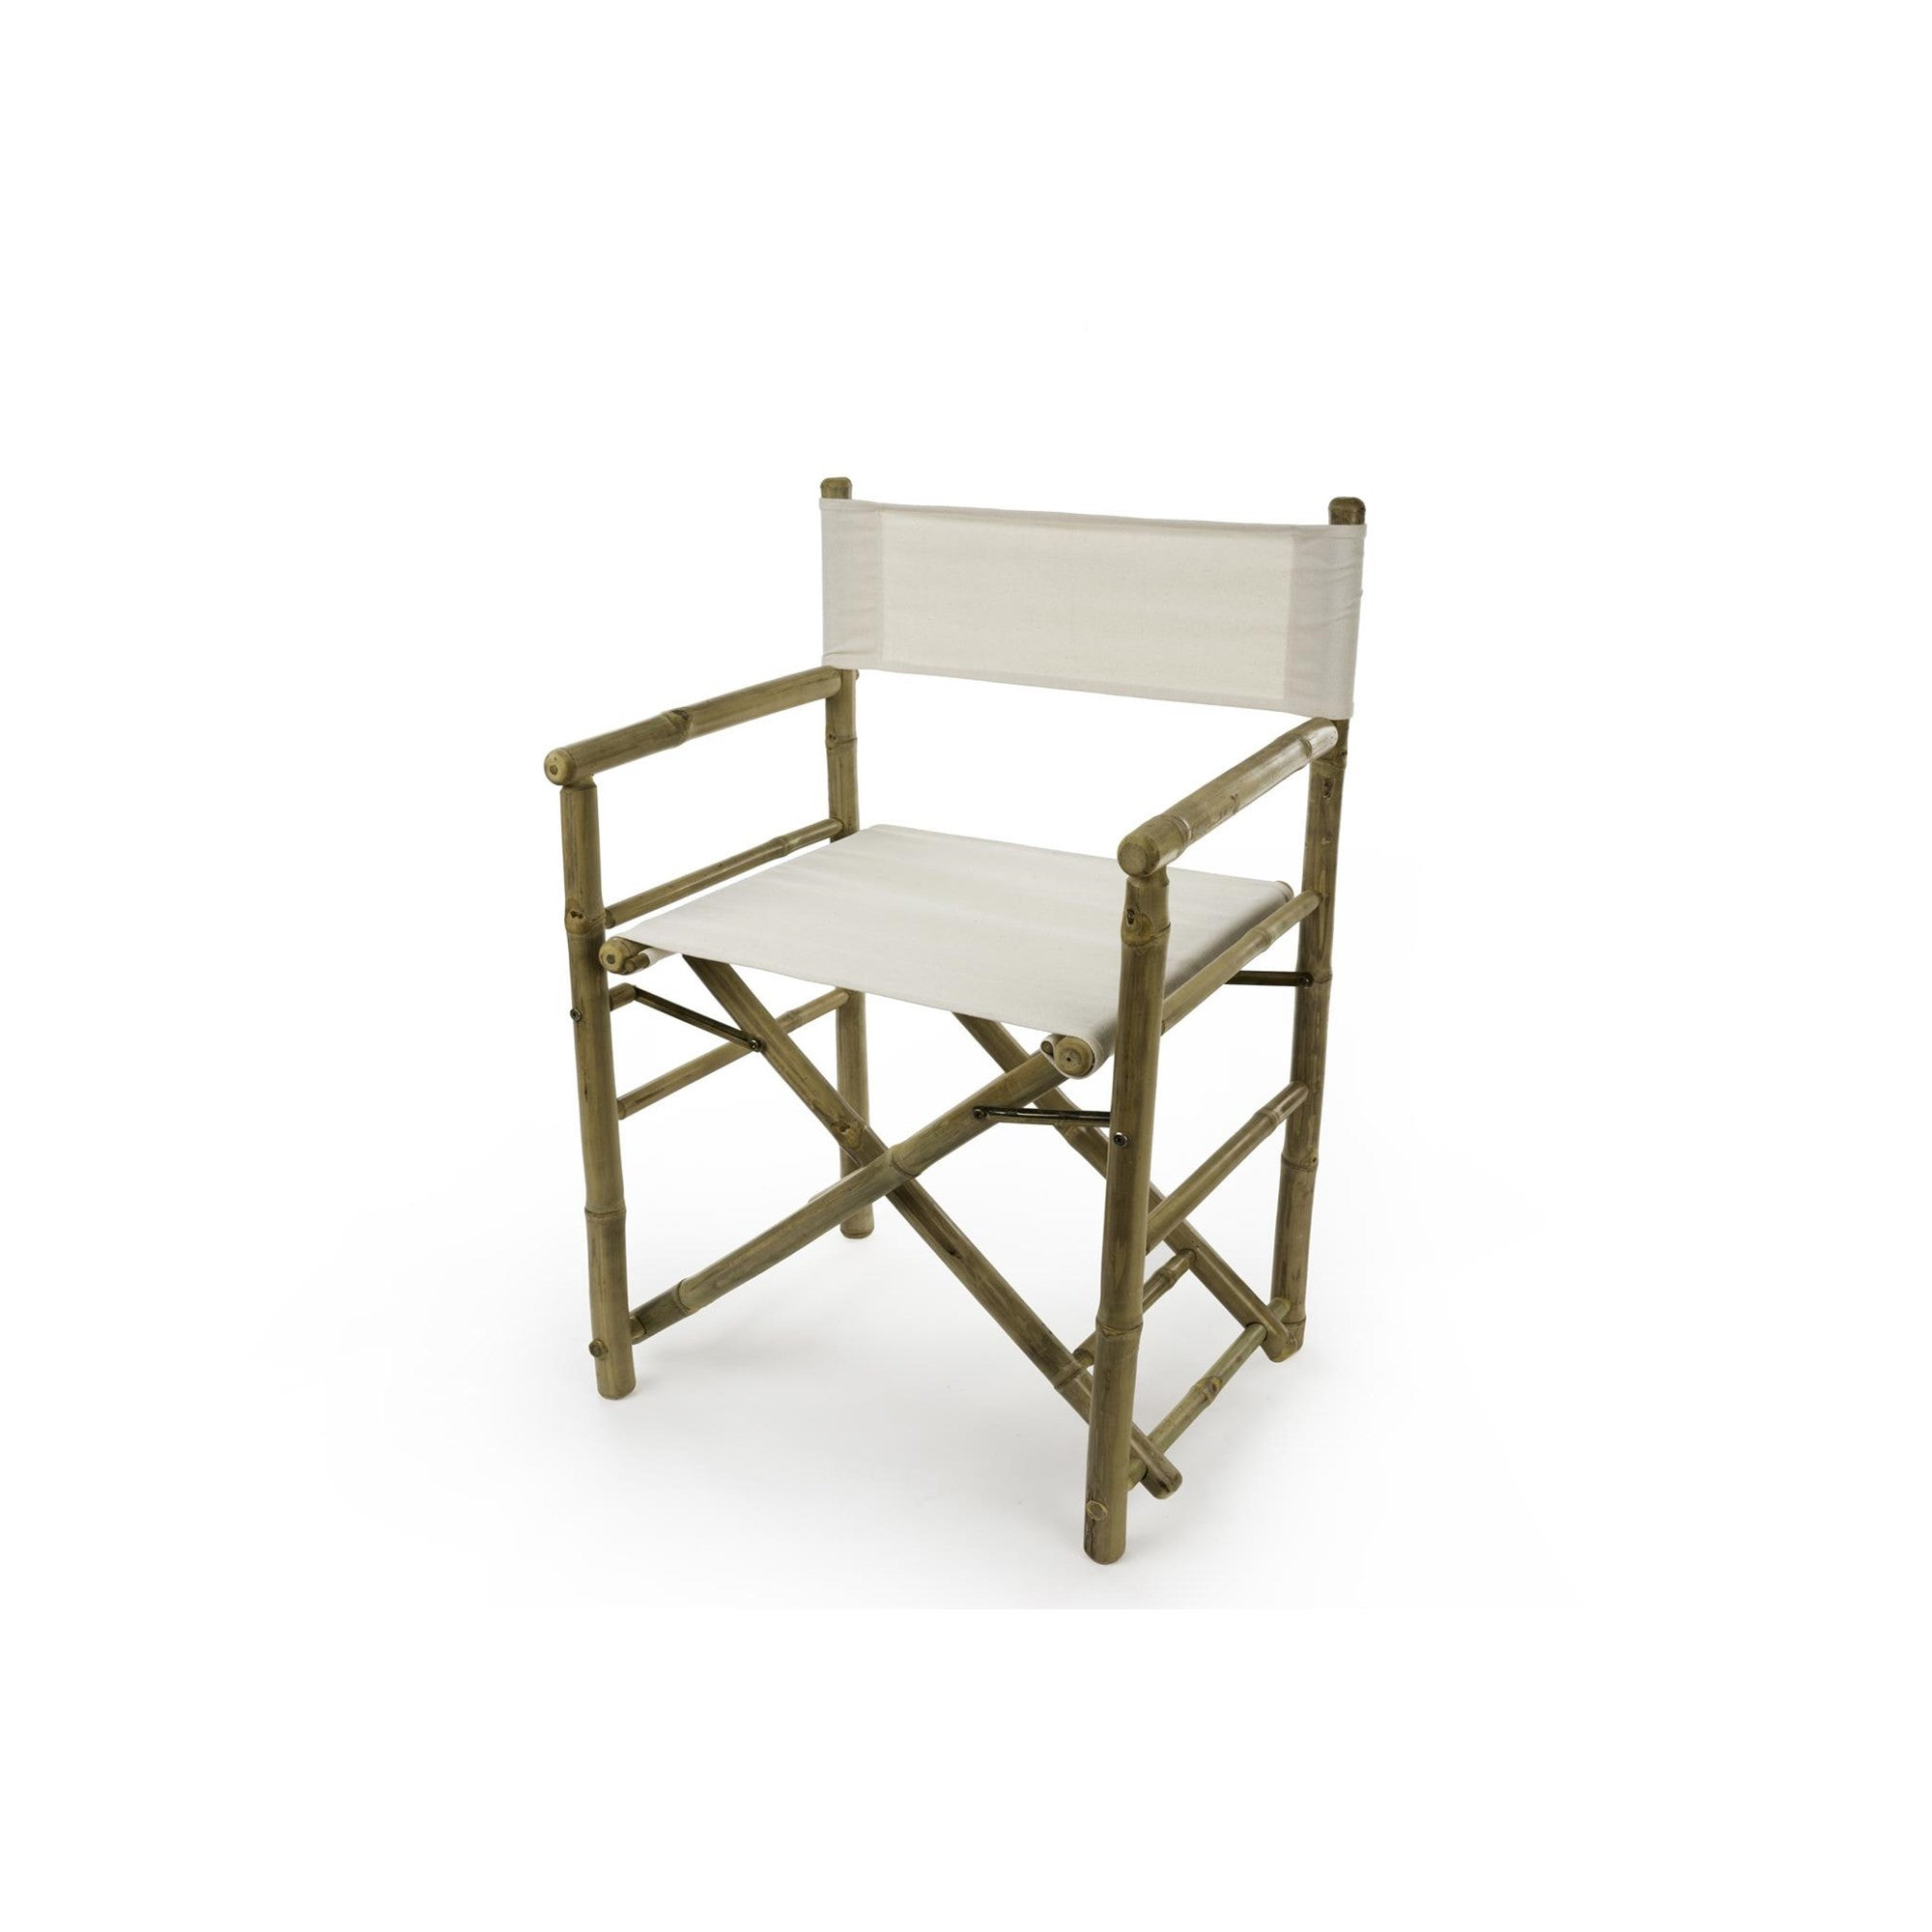 Bamboo Directors Chair, IT-Indaba Trading, Putti Fine Furnishings